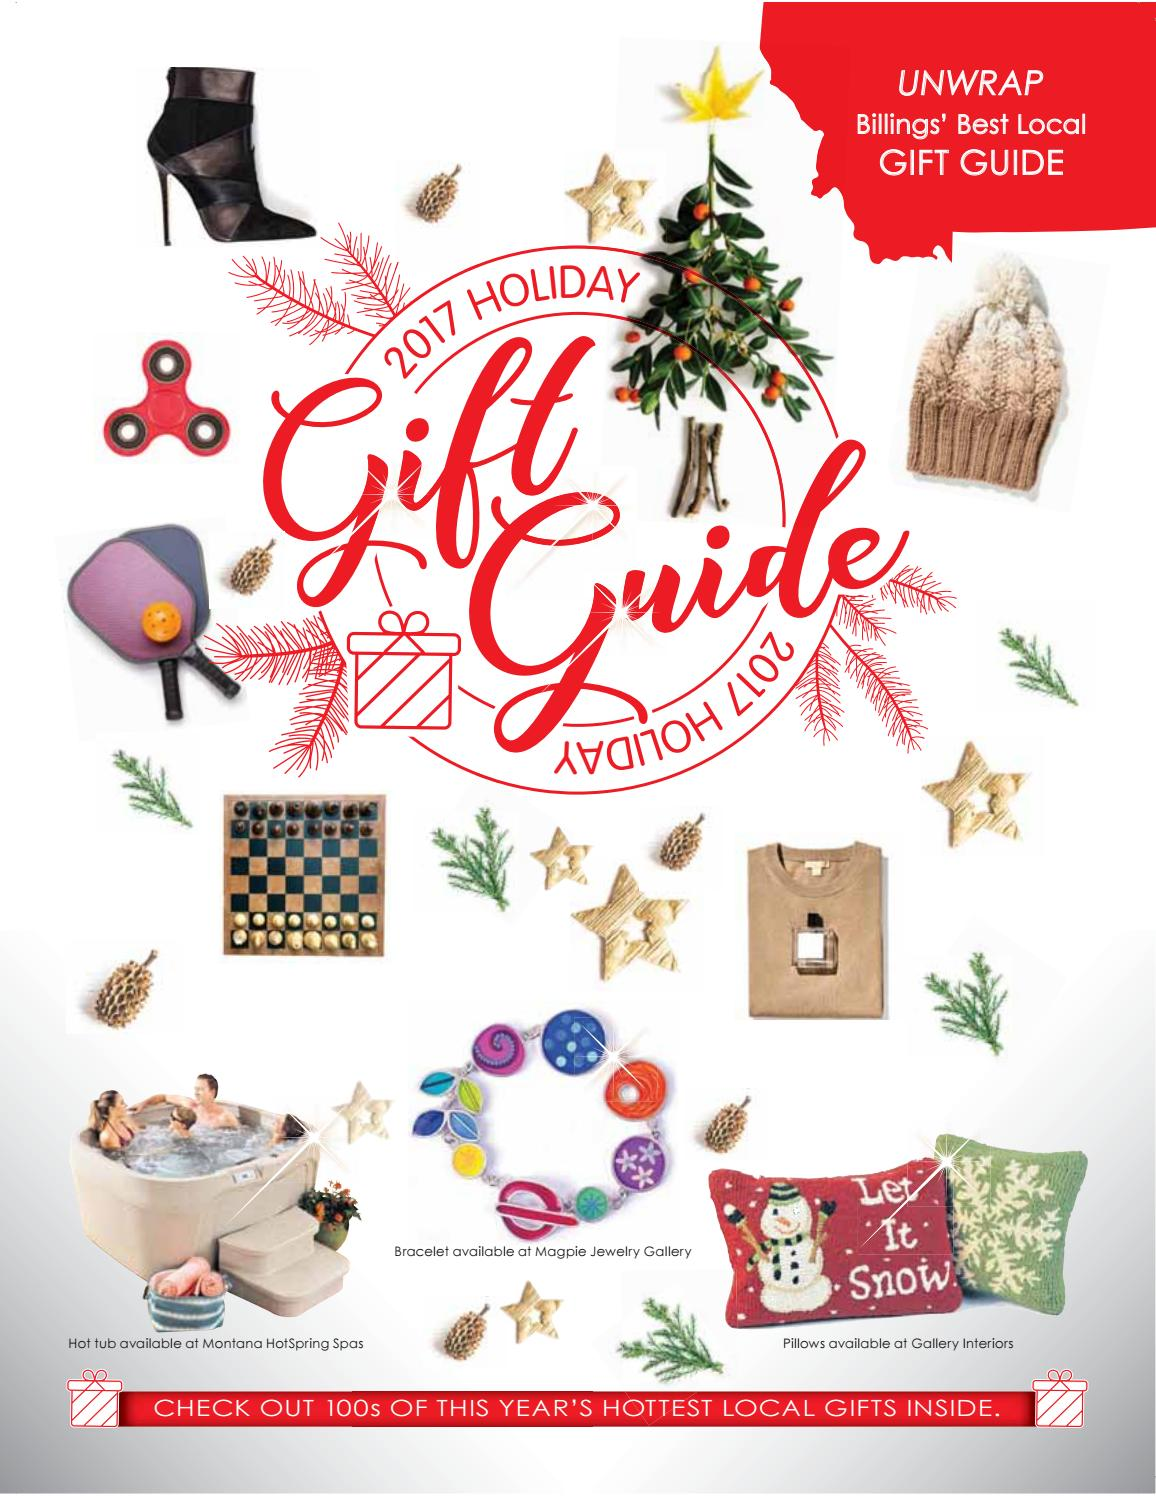 2017 holiday gift guide by Billings Gazette - issuu